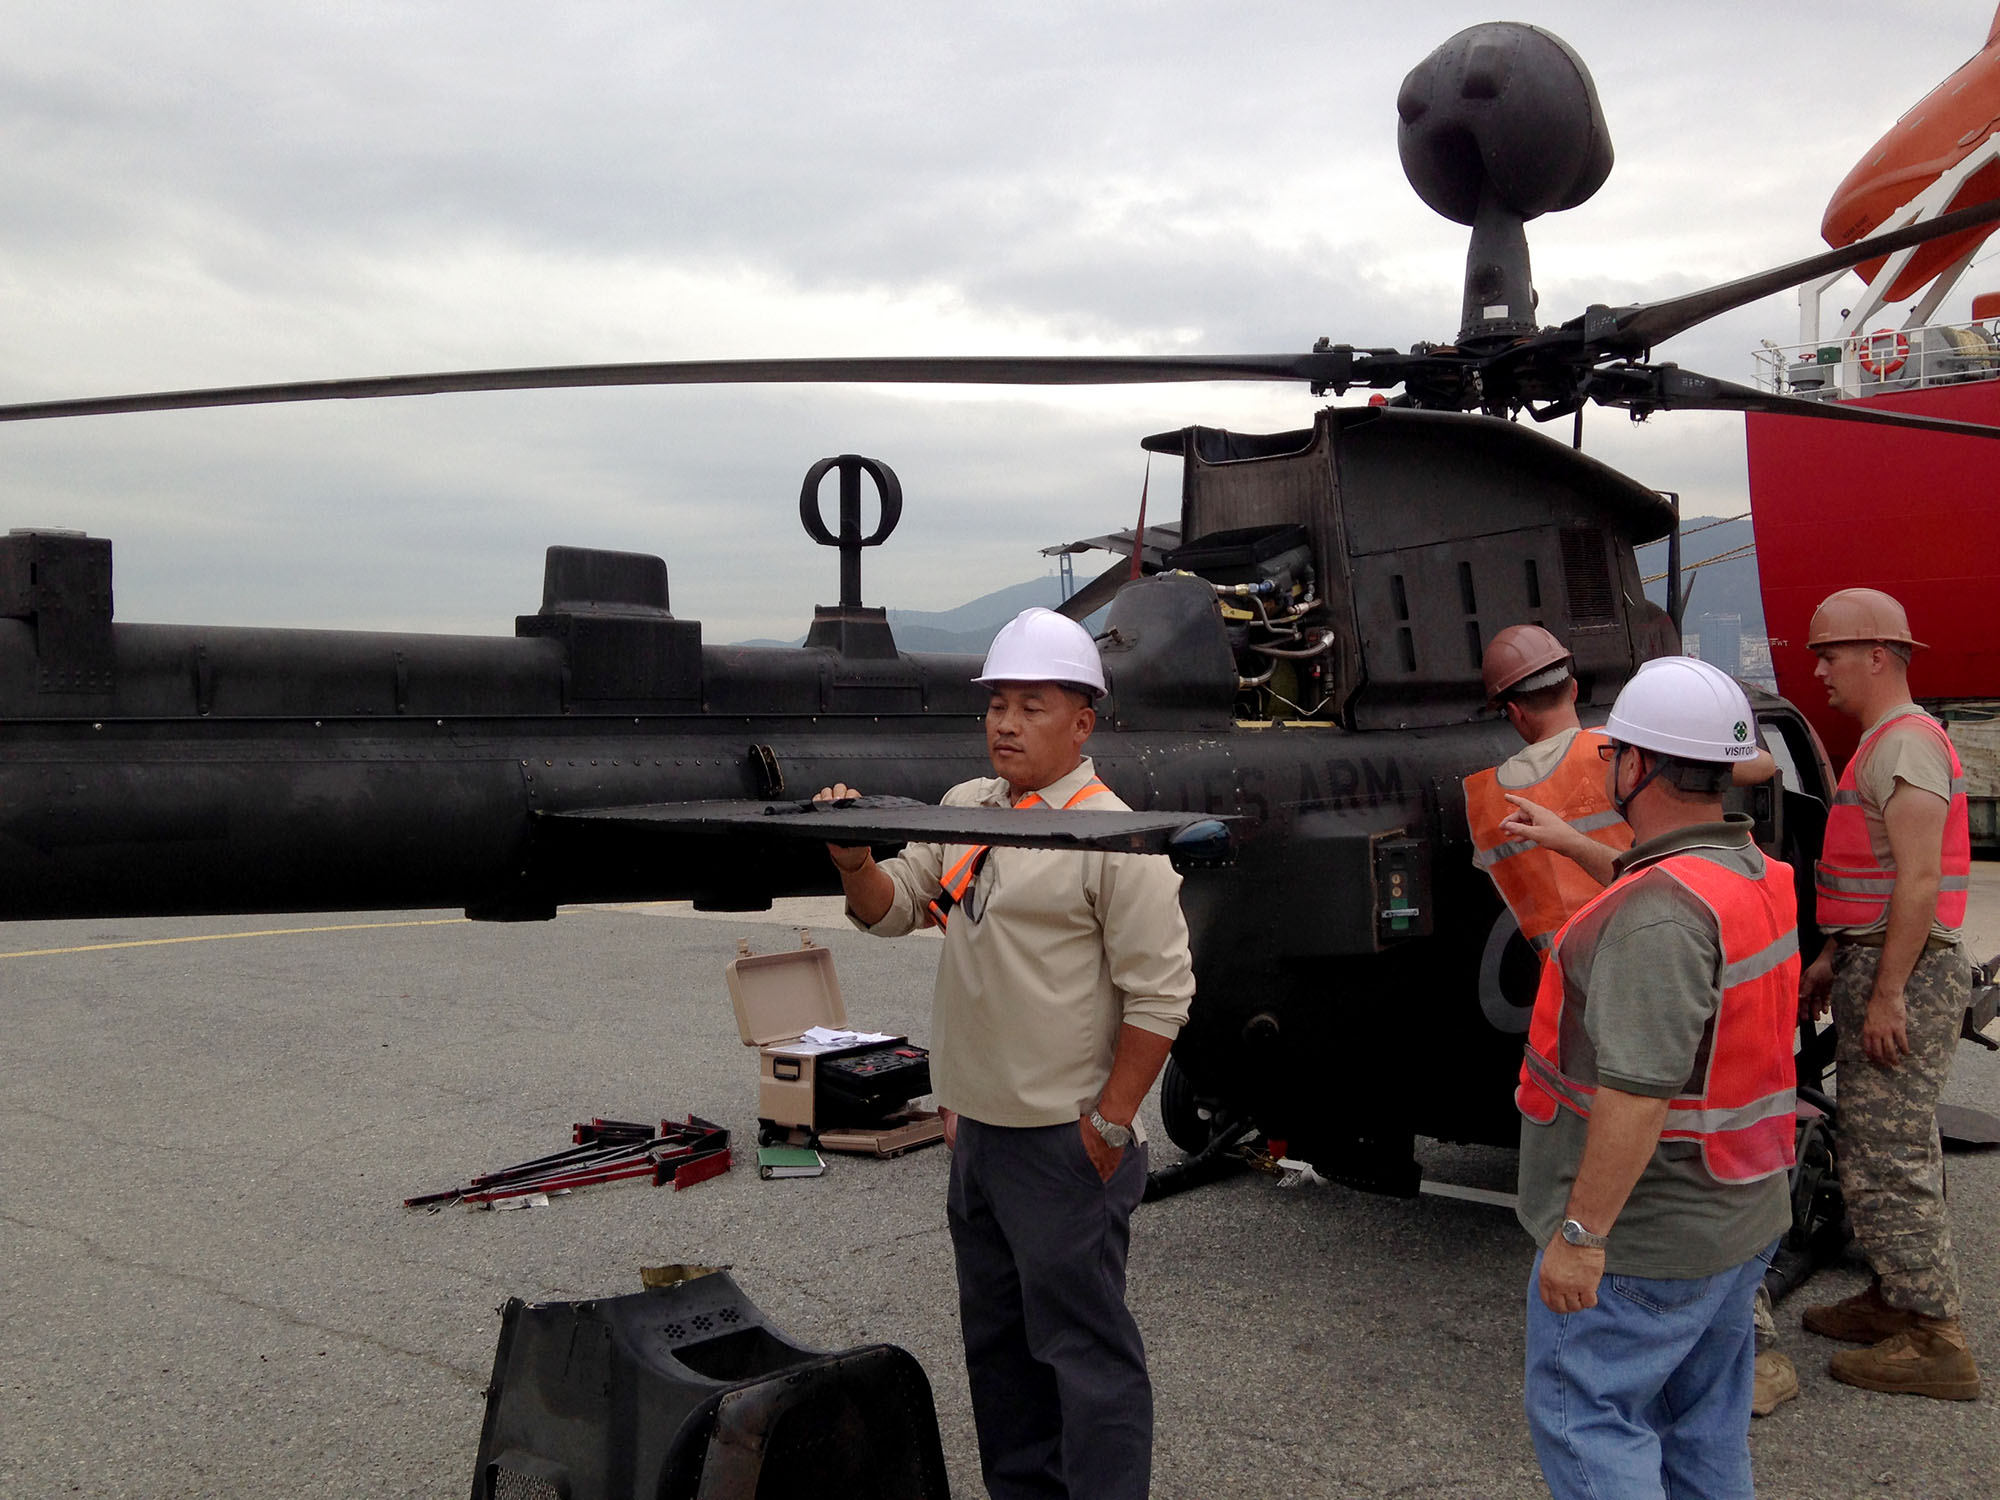 OH-58D Kiowa Warrior helicopters inspection